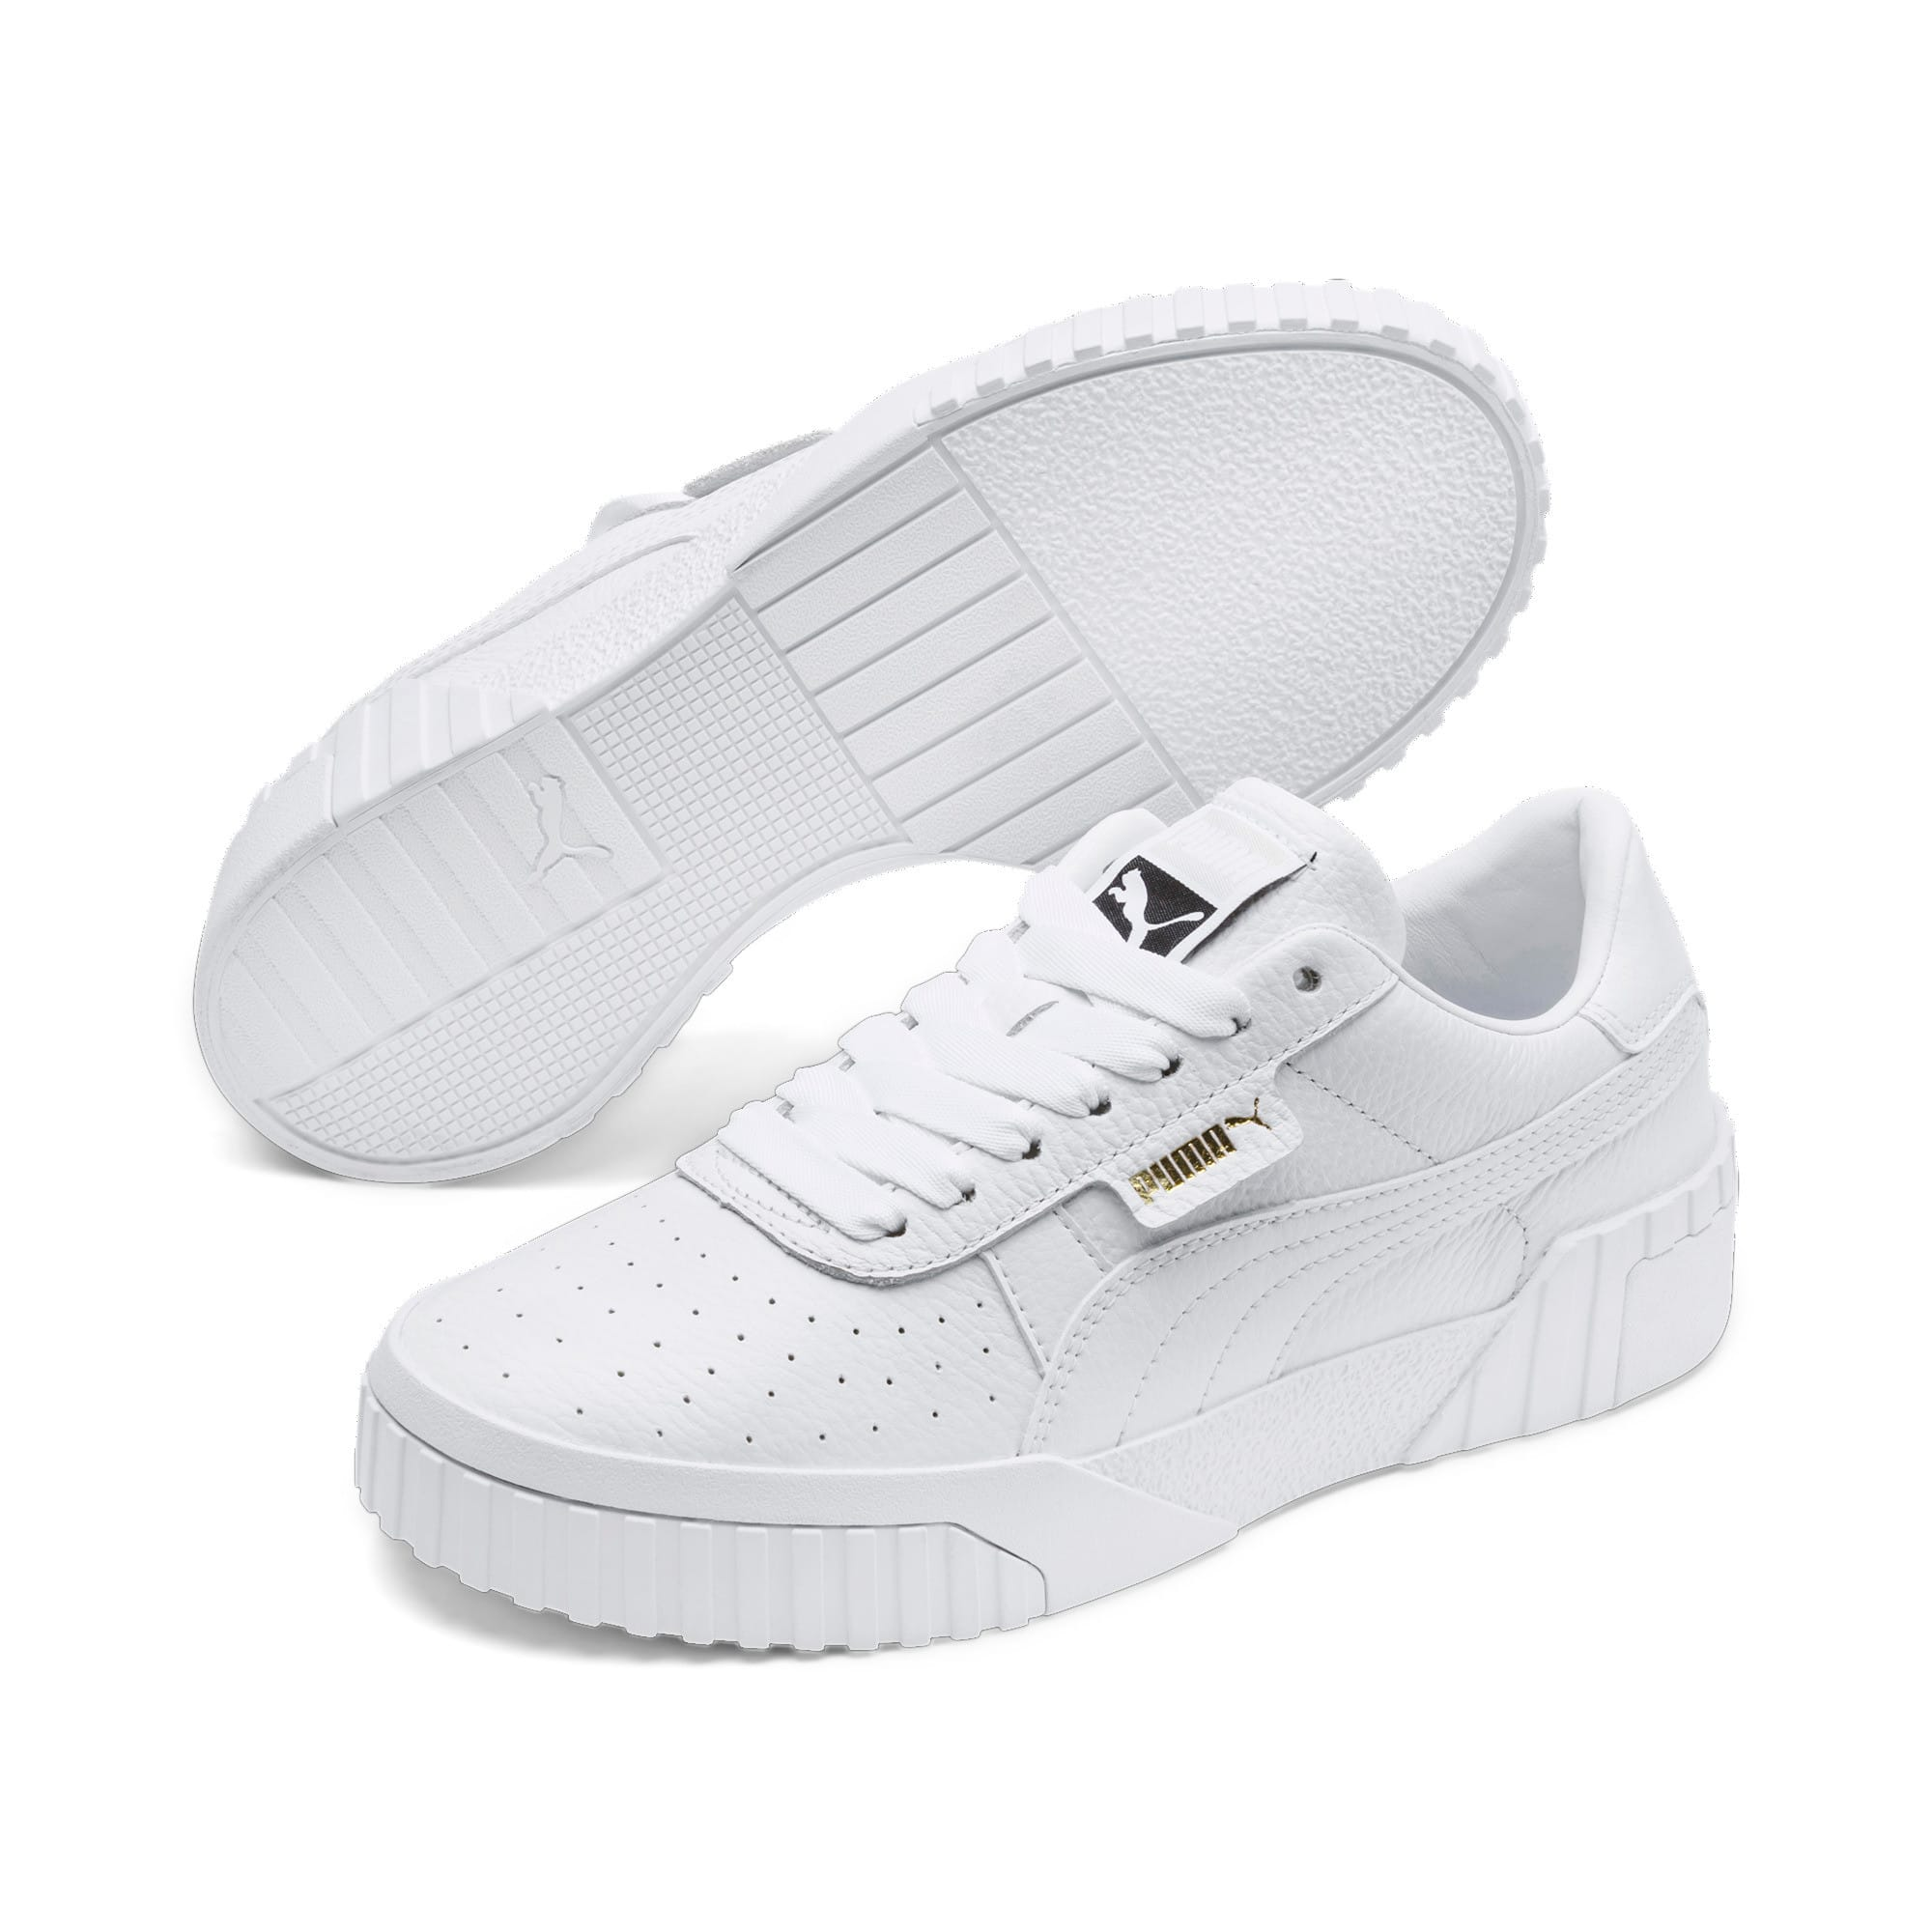 Thumbnail 3 of Cali Women's Sneakers, Puma White-Puma White, medium